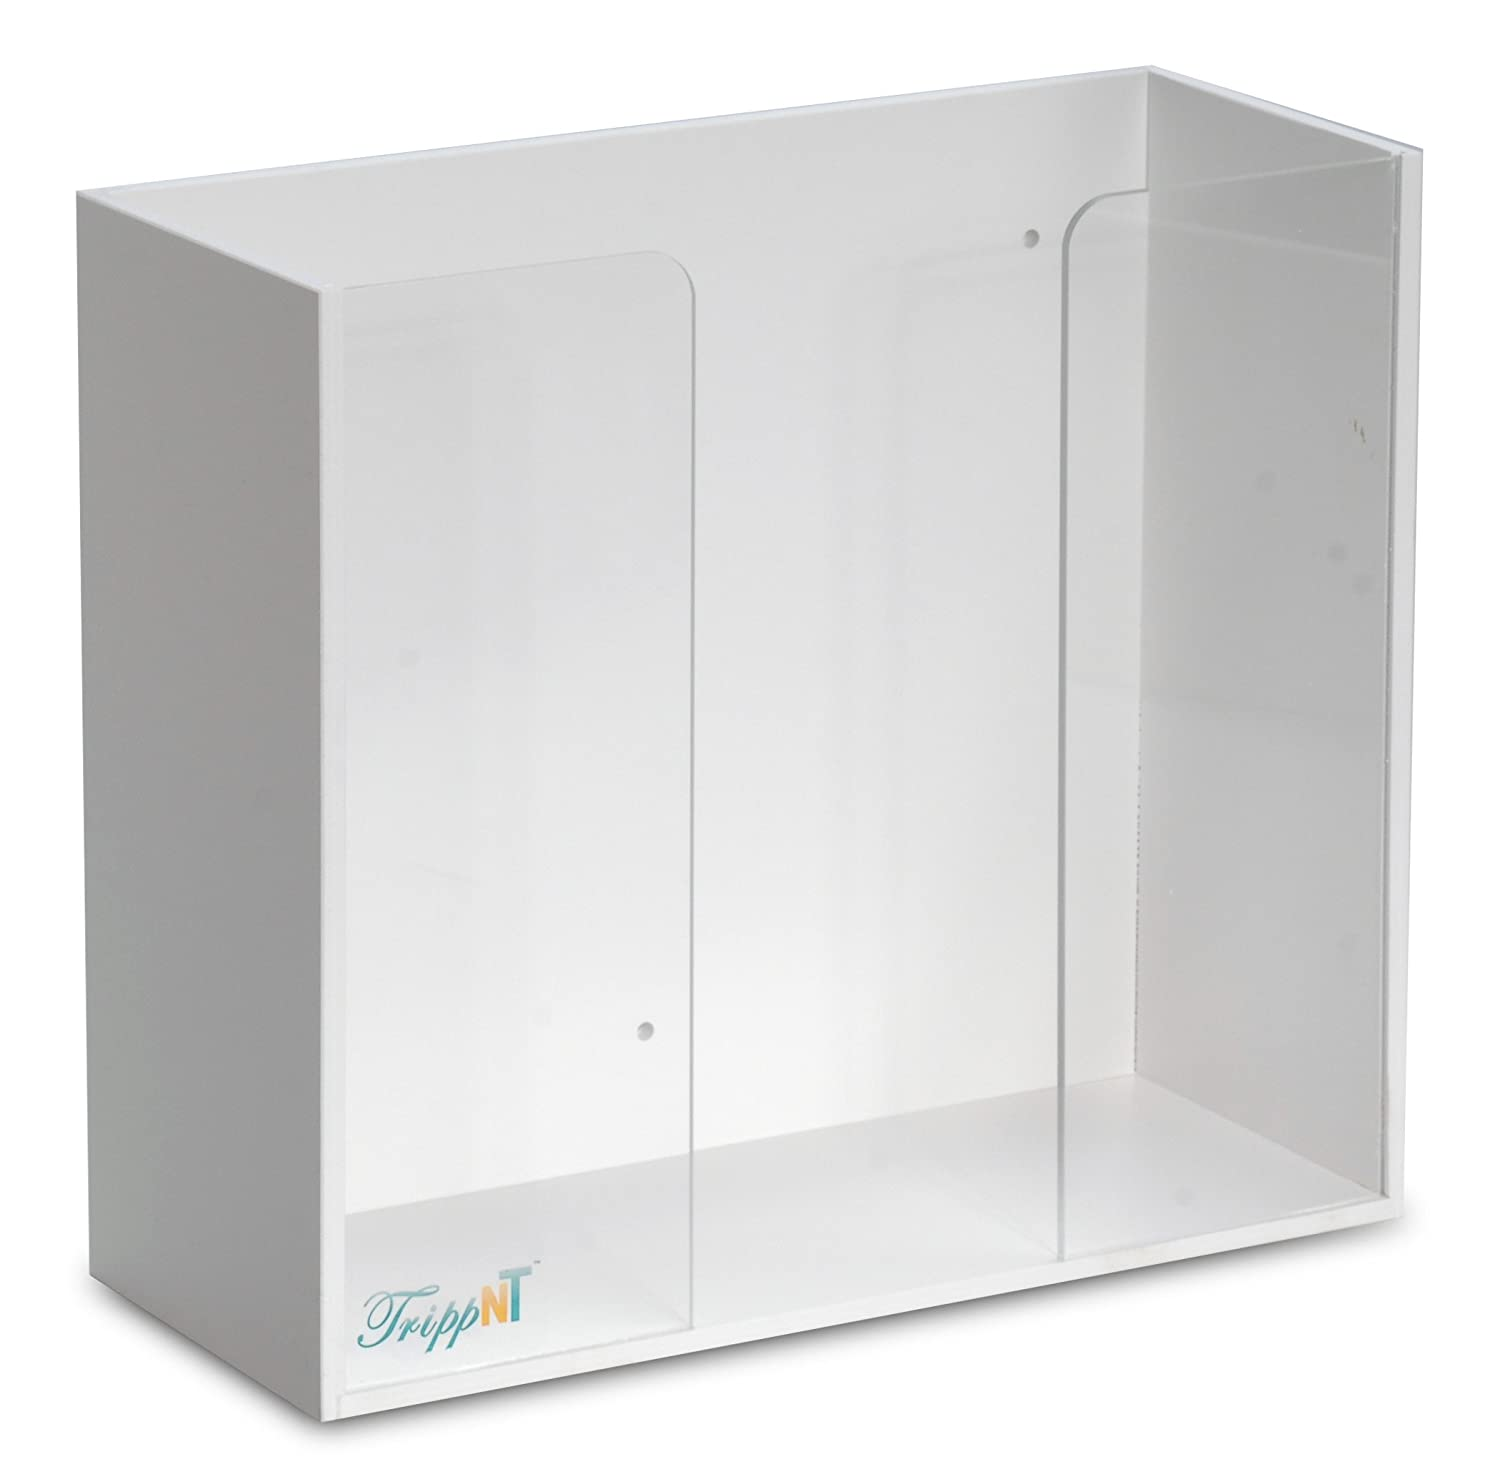 TrippNT 50098 White PVC and Acrylic Double Top Loading Glove Box Holder, 11.5' W x 10.25' H x 4.75' D 11.5 W x 10.25 H x 4.75 D